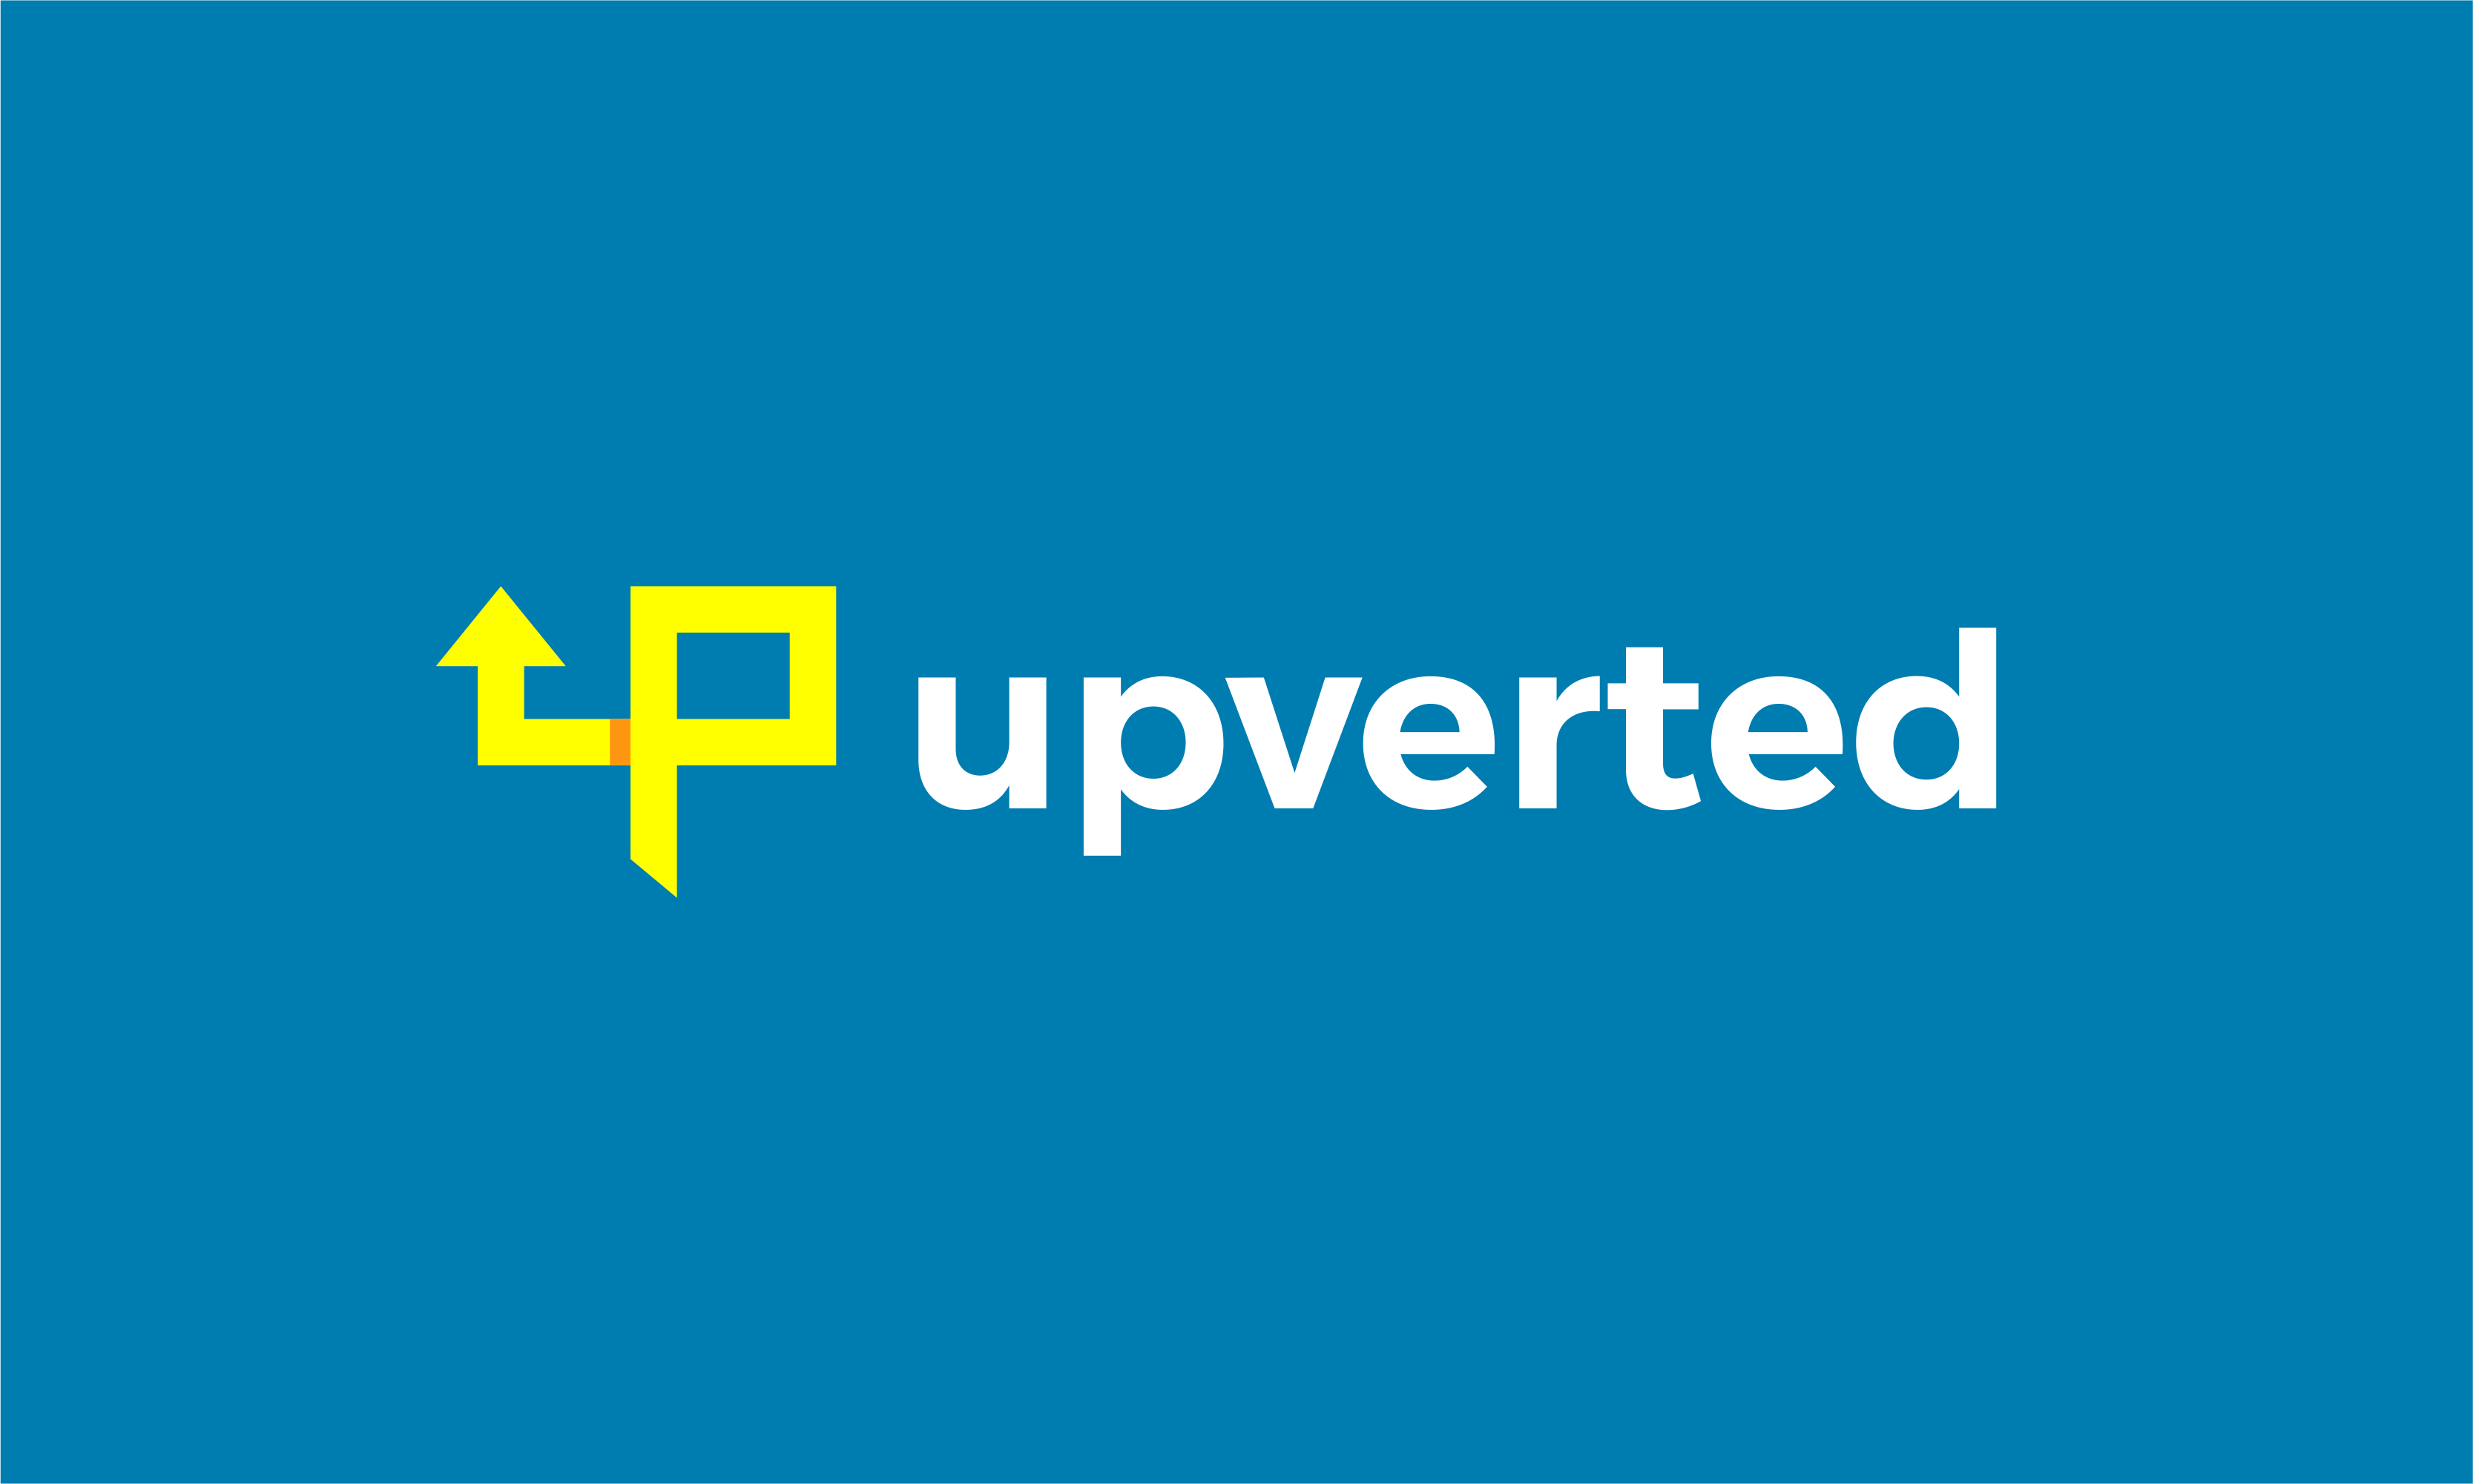 Upverted